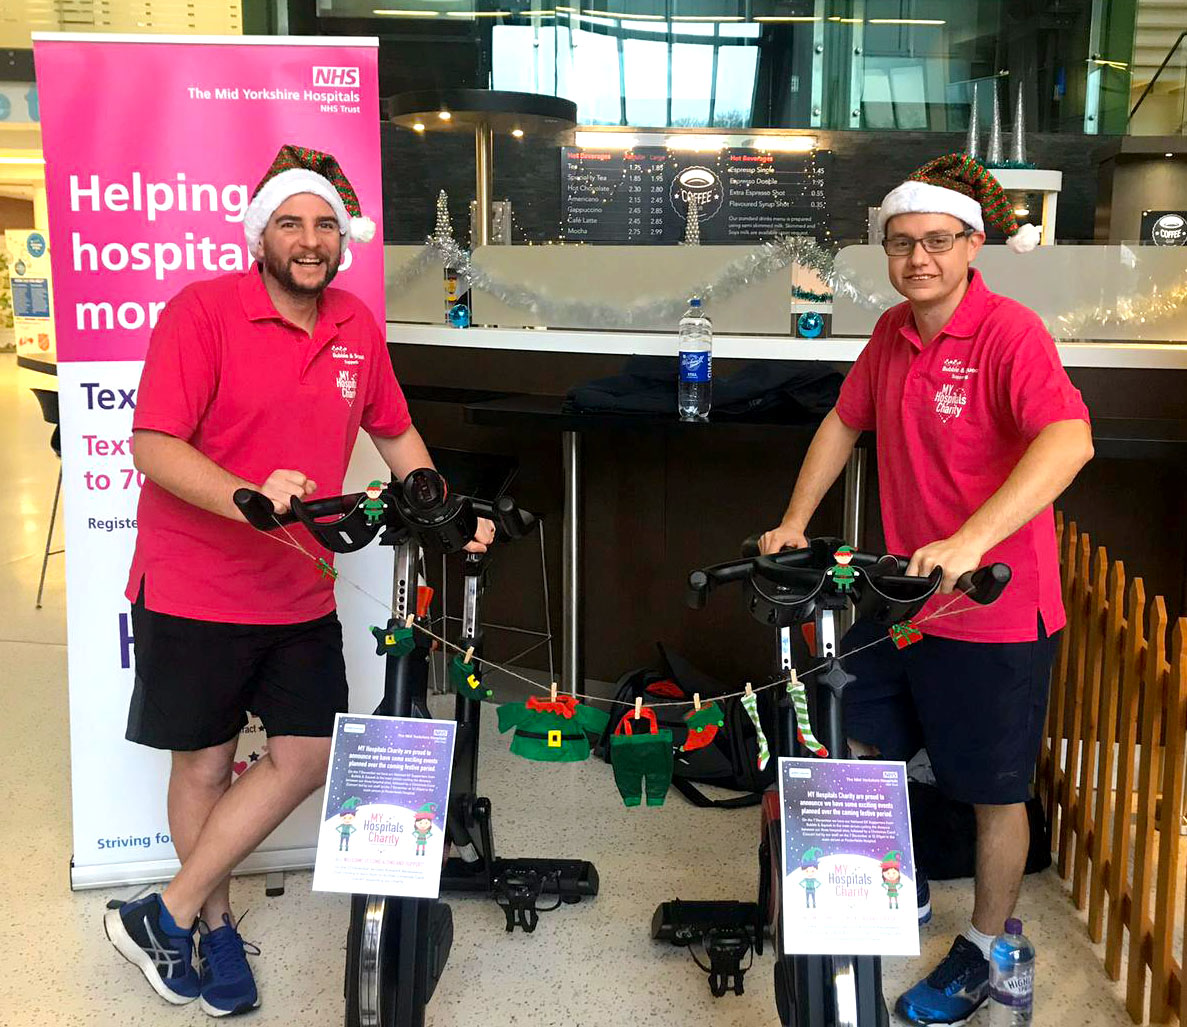 Pete & Diddy getting ready for a static bike as part of giving back page